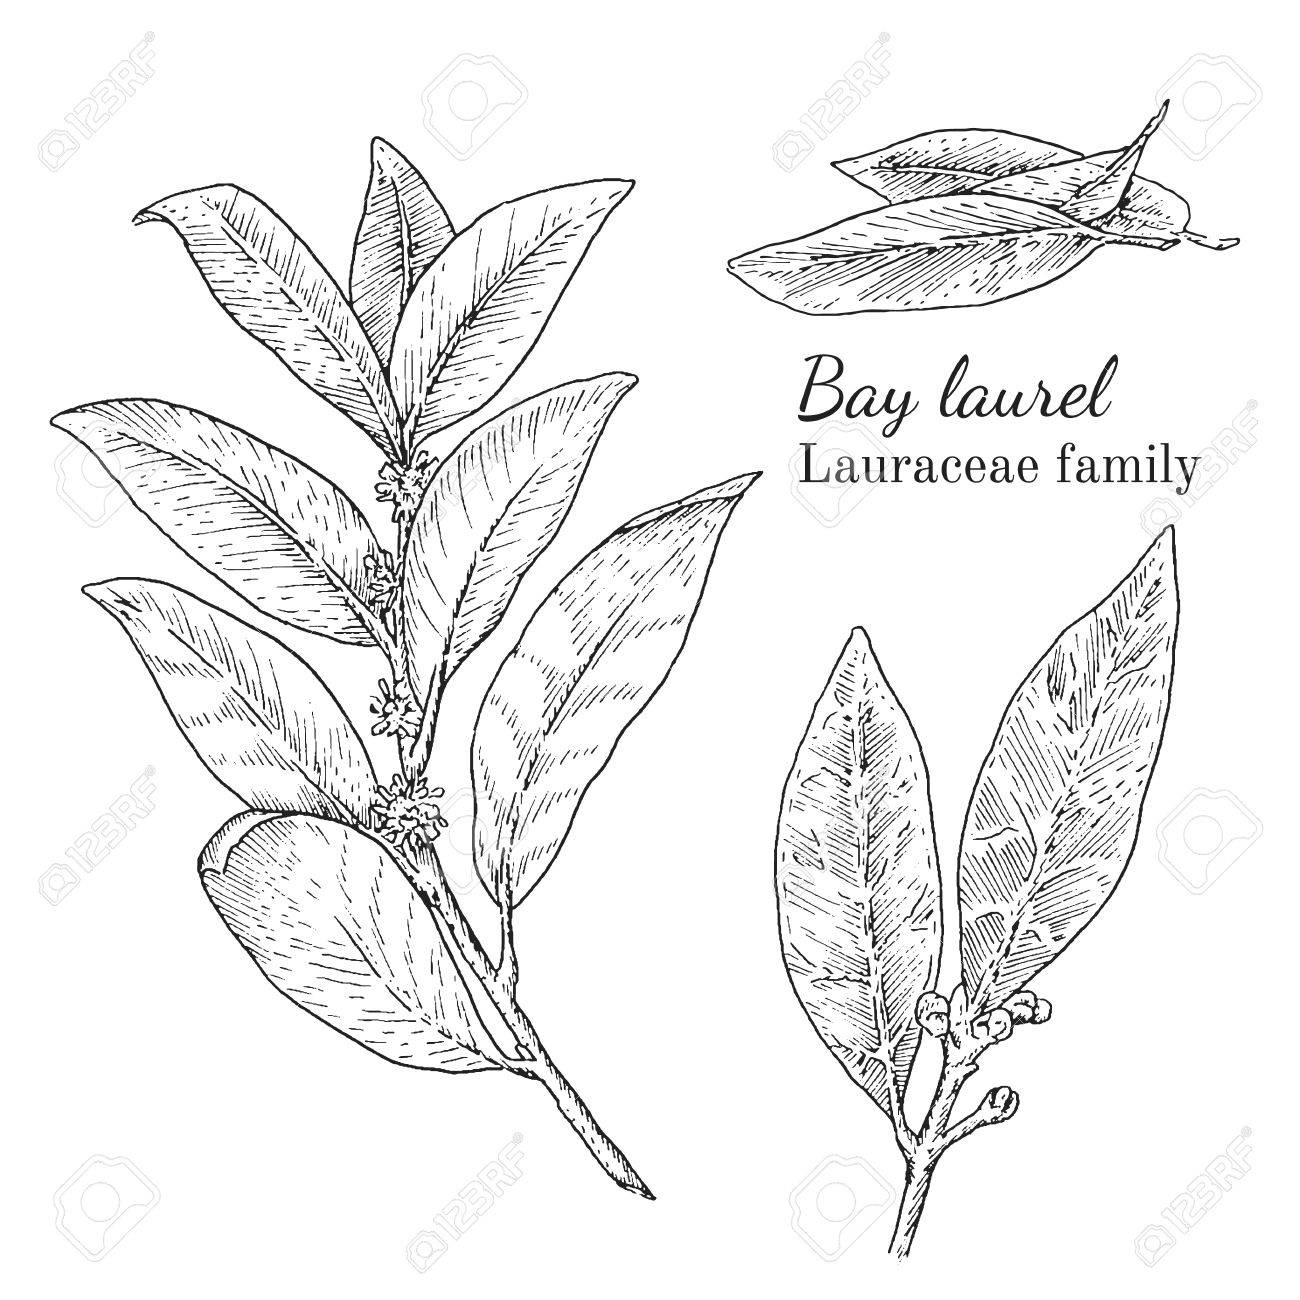 1300x1300 Ink Bay Laurel Herbal Illustration. Hand Drawn Botanical Sketch